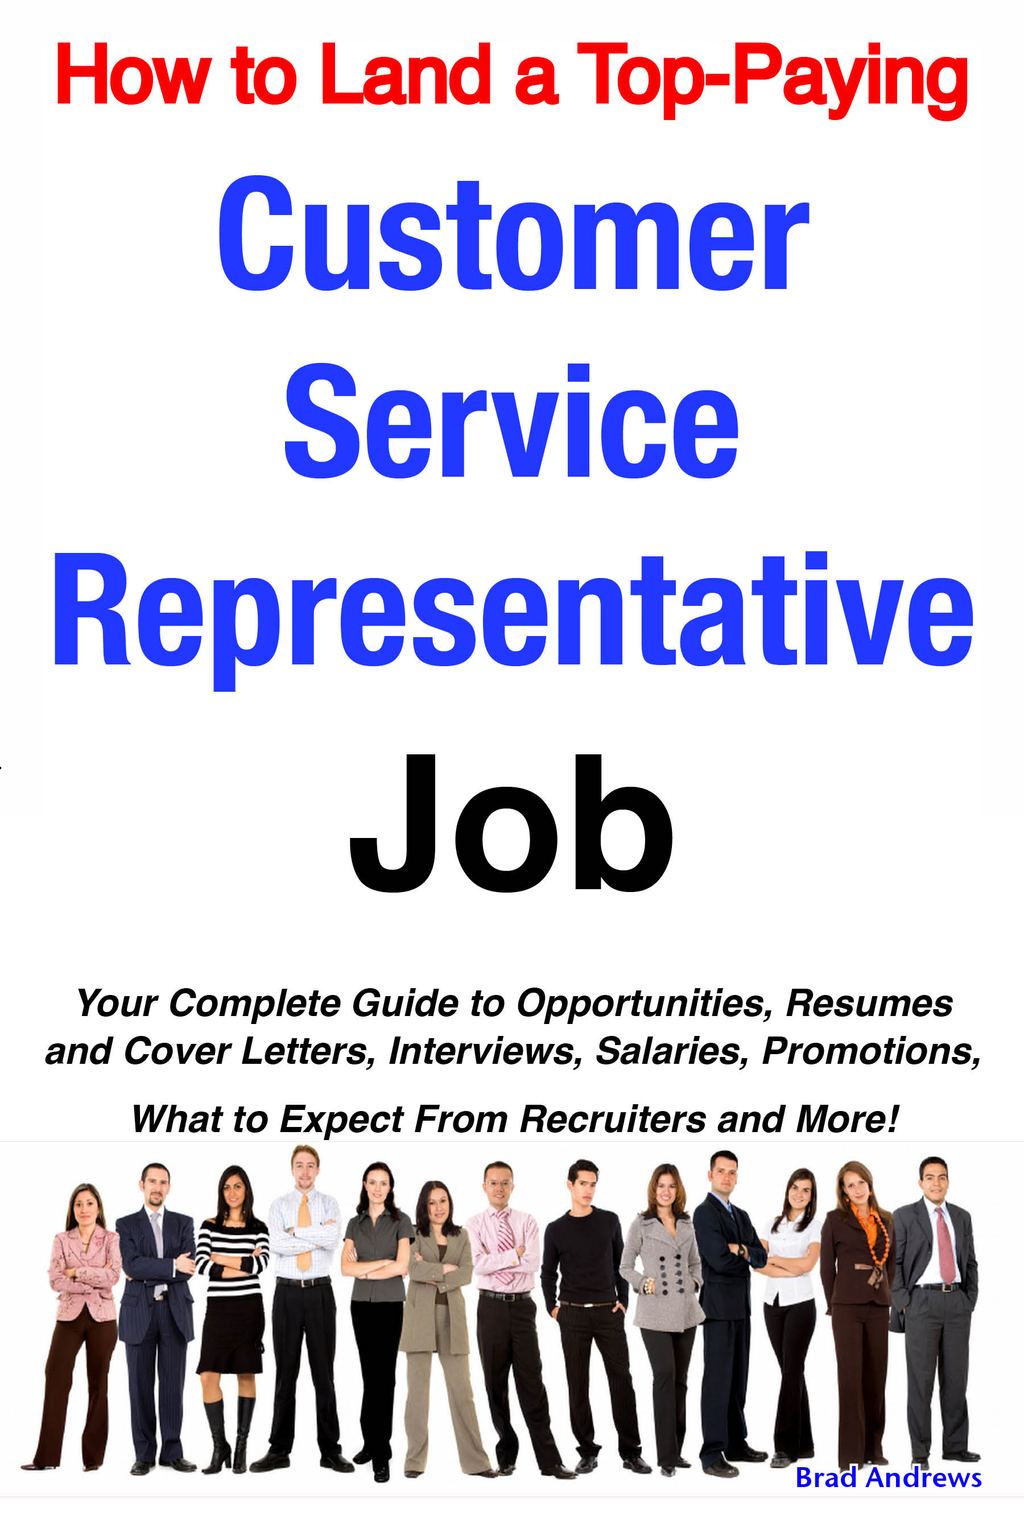 How to Land a Top-Paying Customer Service Representative Job: Your Complete Guide to Opportunities, Resumes and Cover Letters, Interviews, Salaries, Promotions, What to Expect From Recruiters and More!